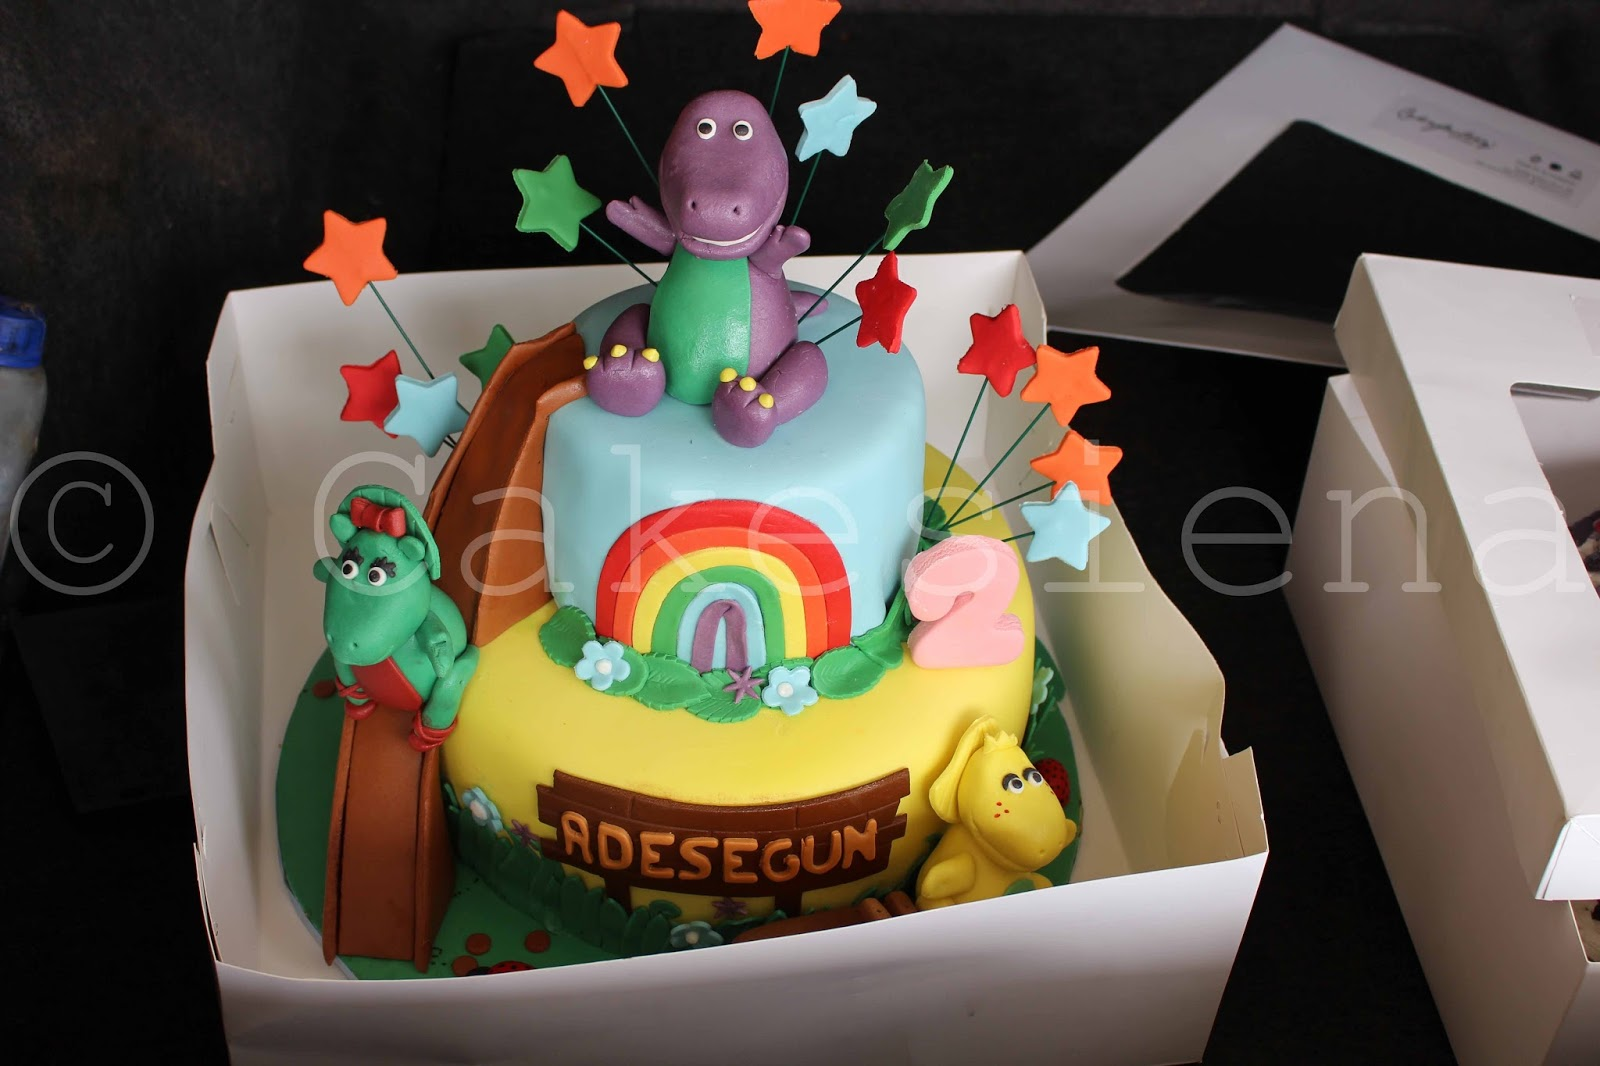 And I Guess It Still Hasnt Gone Out Of Style As Barney Is Frequently Requested On Kids Birthday Cakes